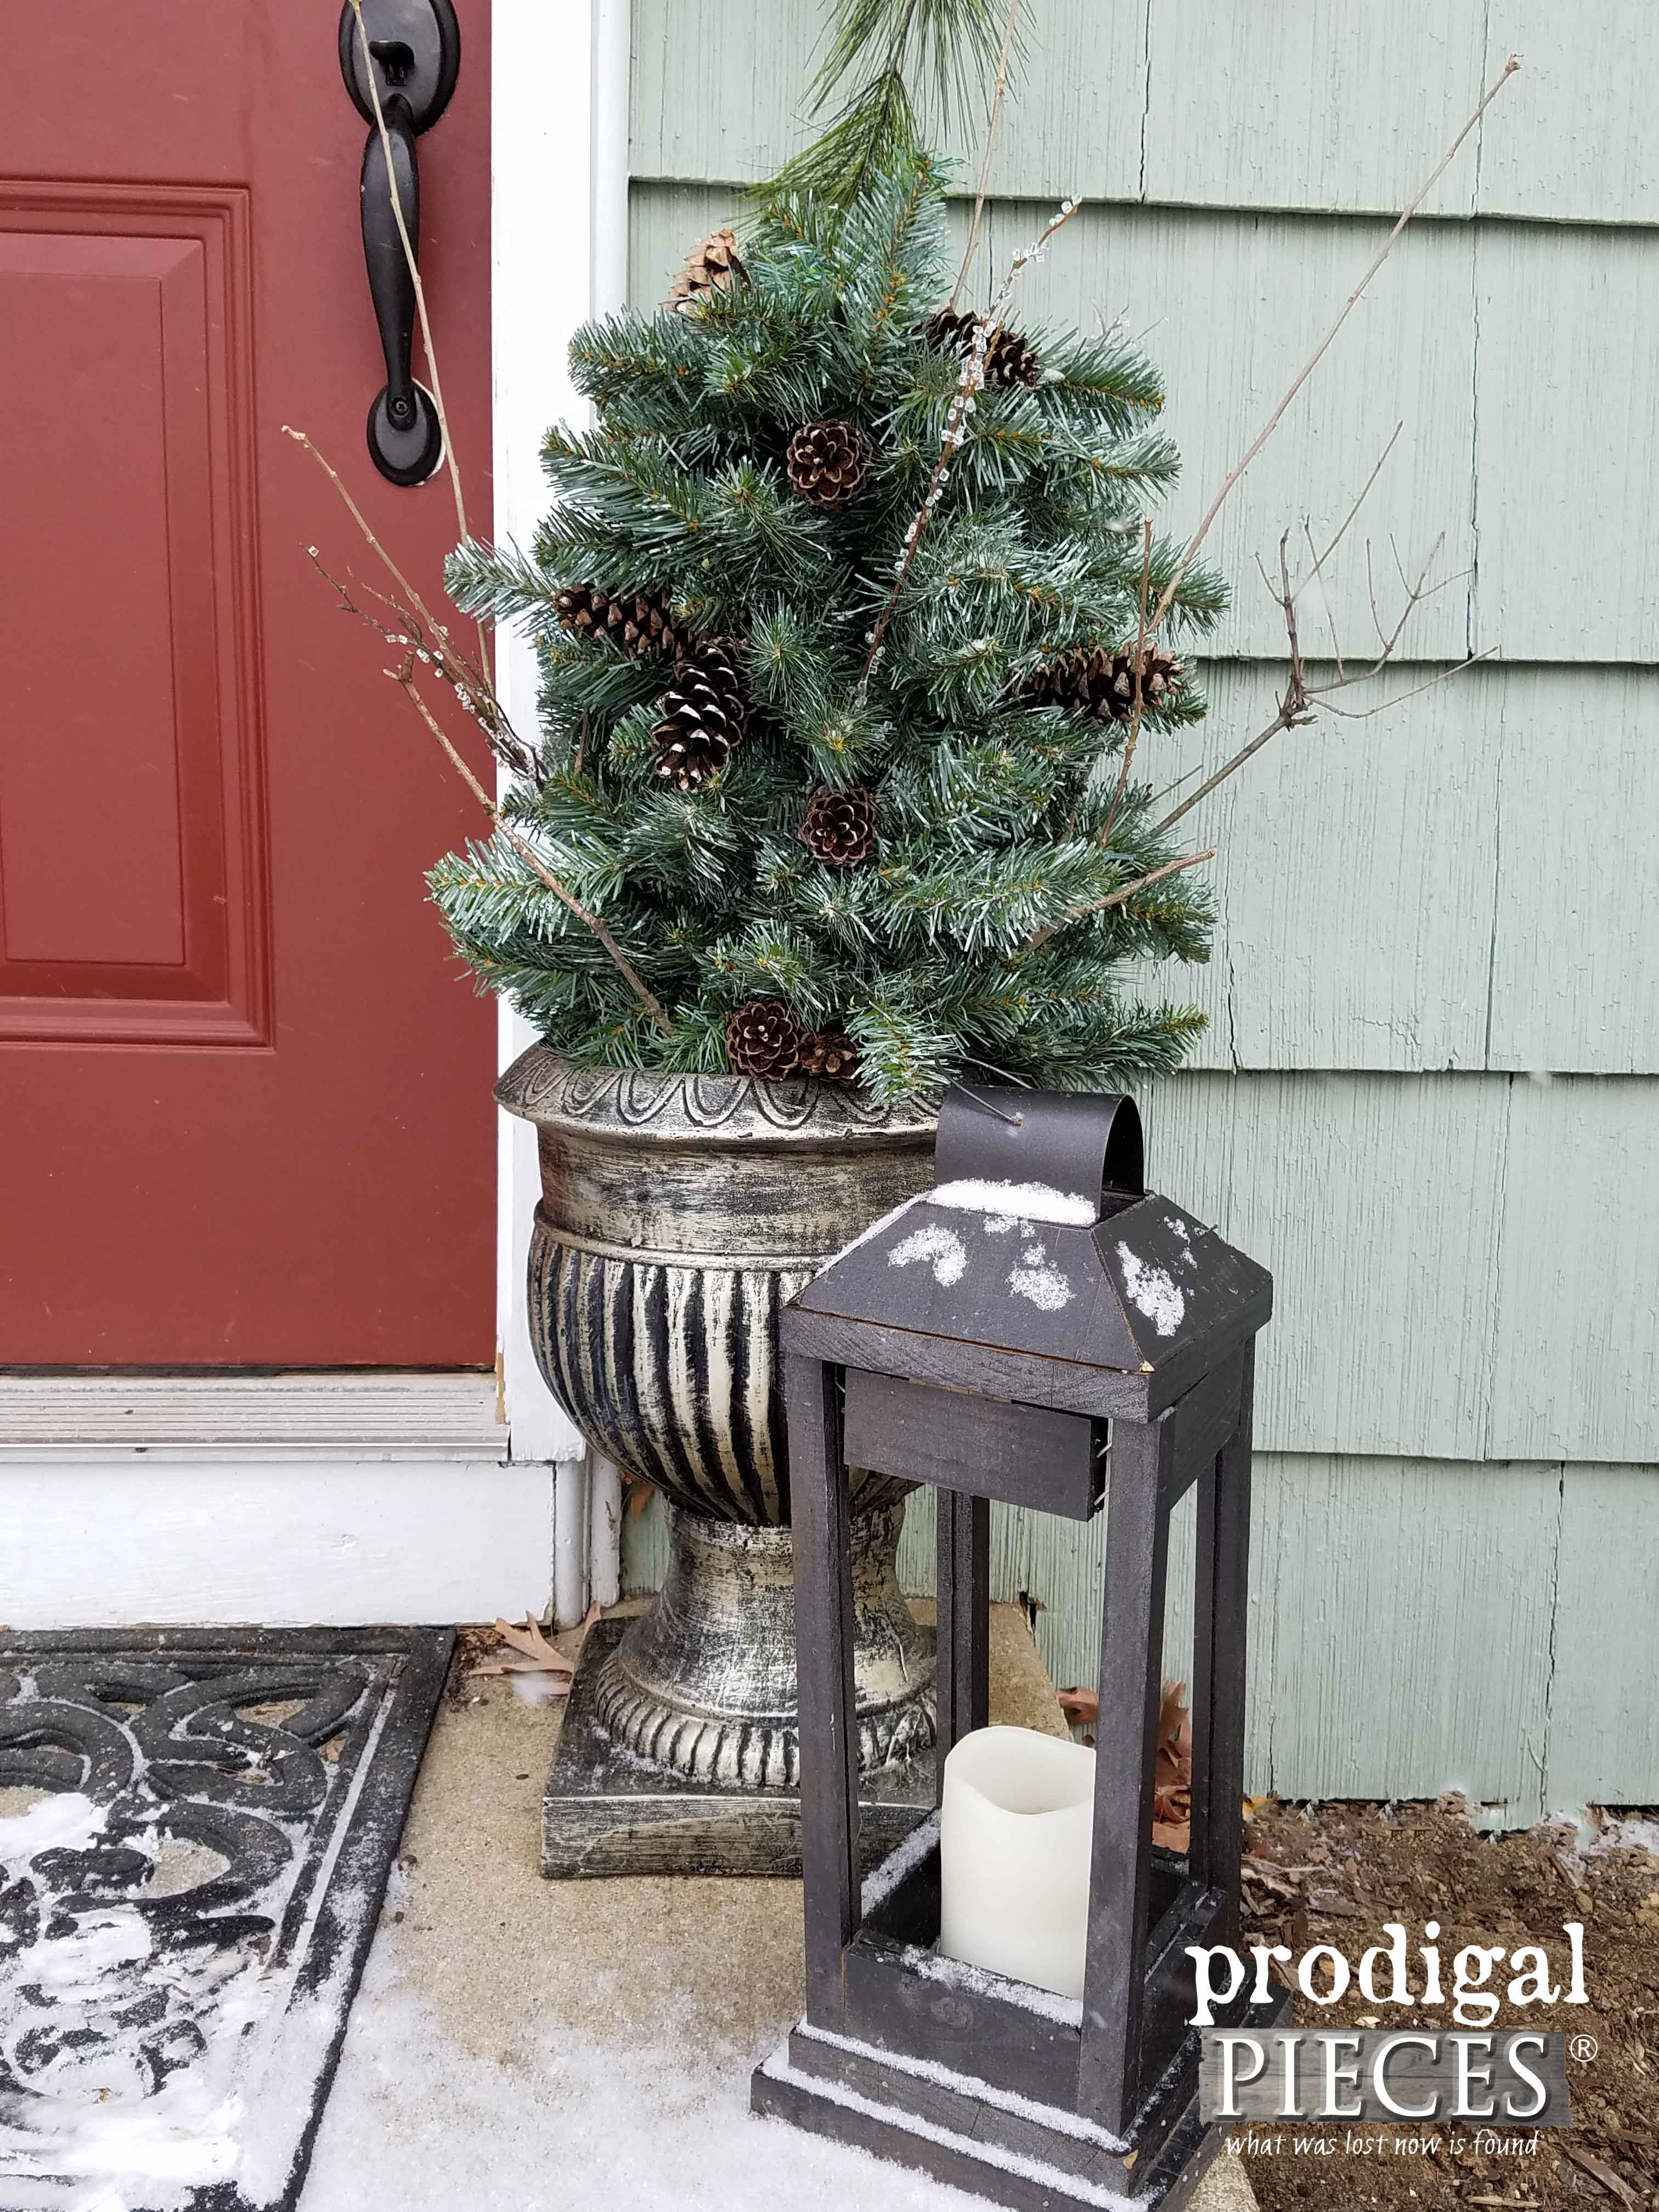 Simple Rustic Winter Urn Made from Repurposed Materials by Prodigal Pieces | prodigalpieces.com